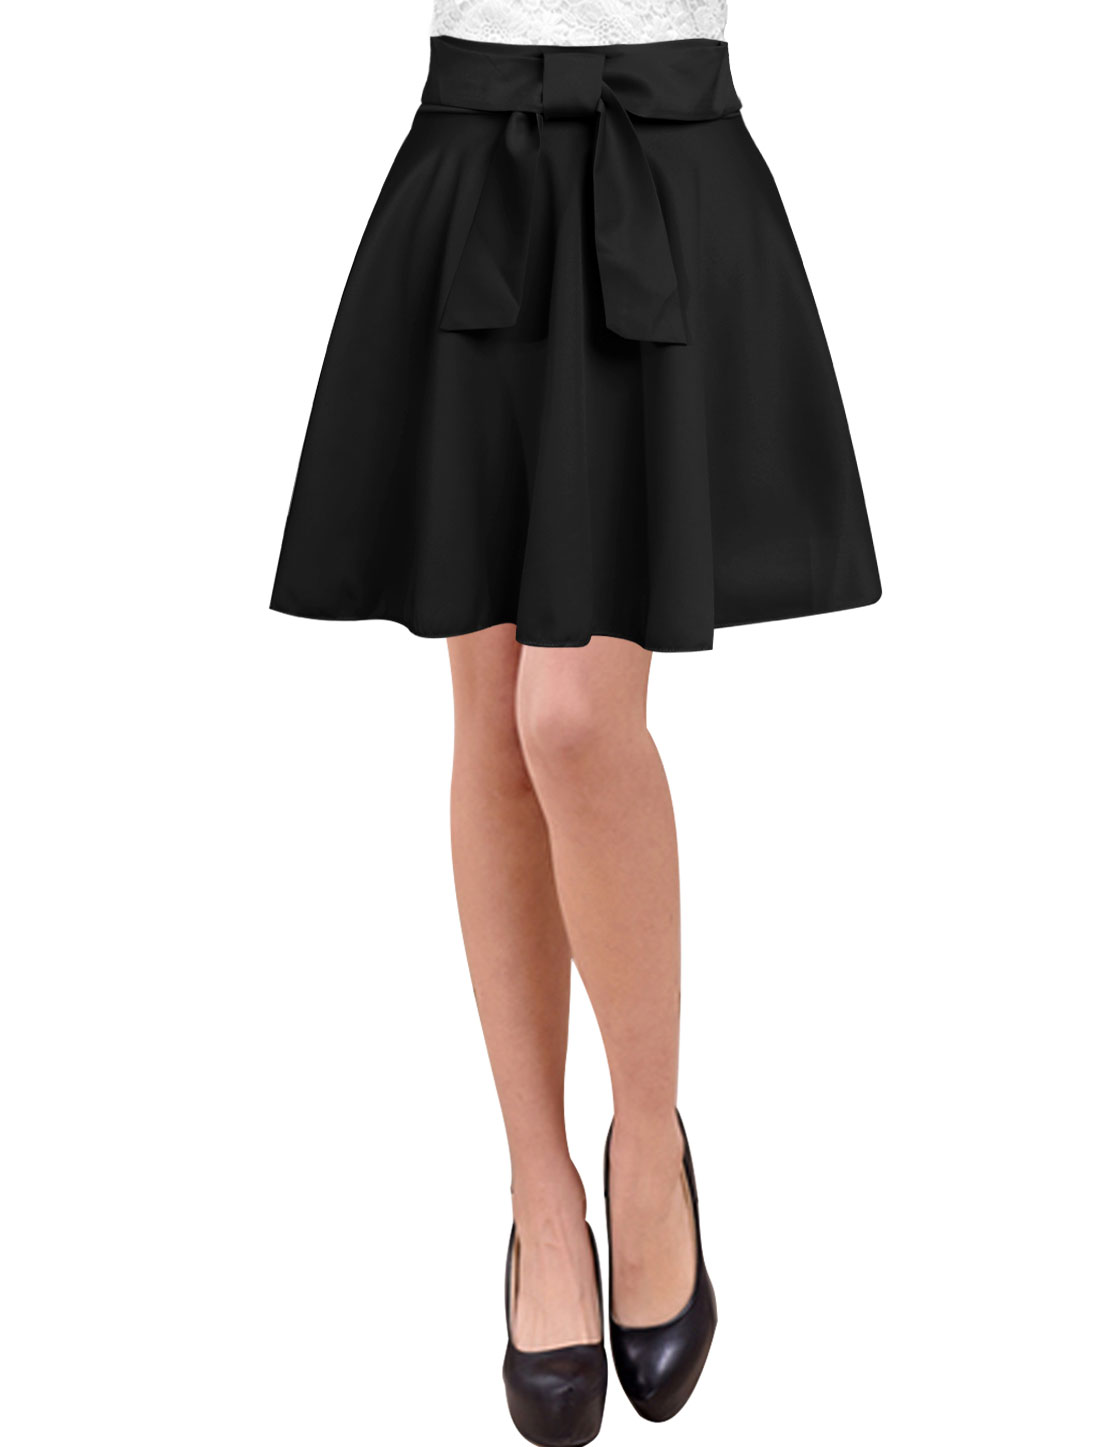 Lady Bowknot Decor Unlined Natural Waist A-Line Skirts Black M